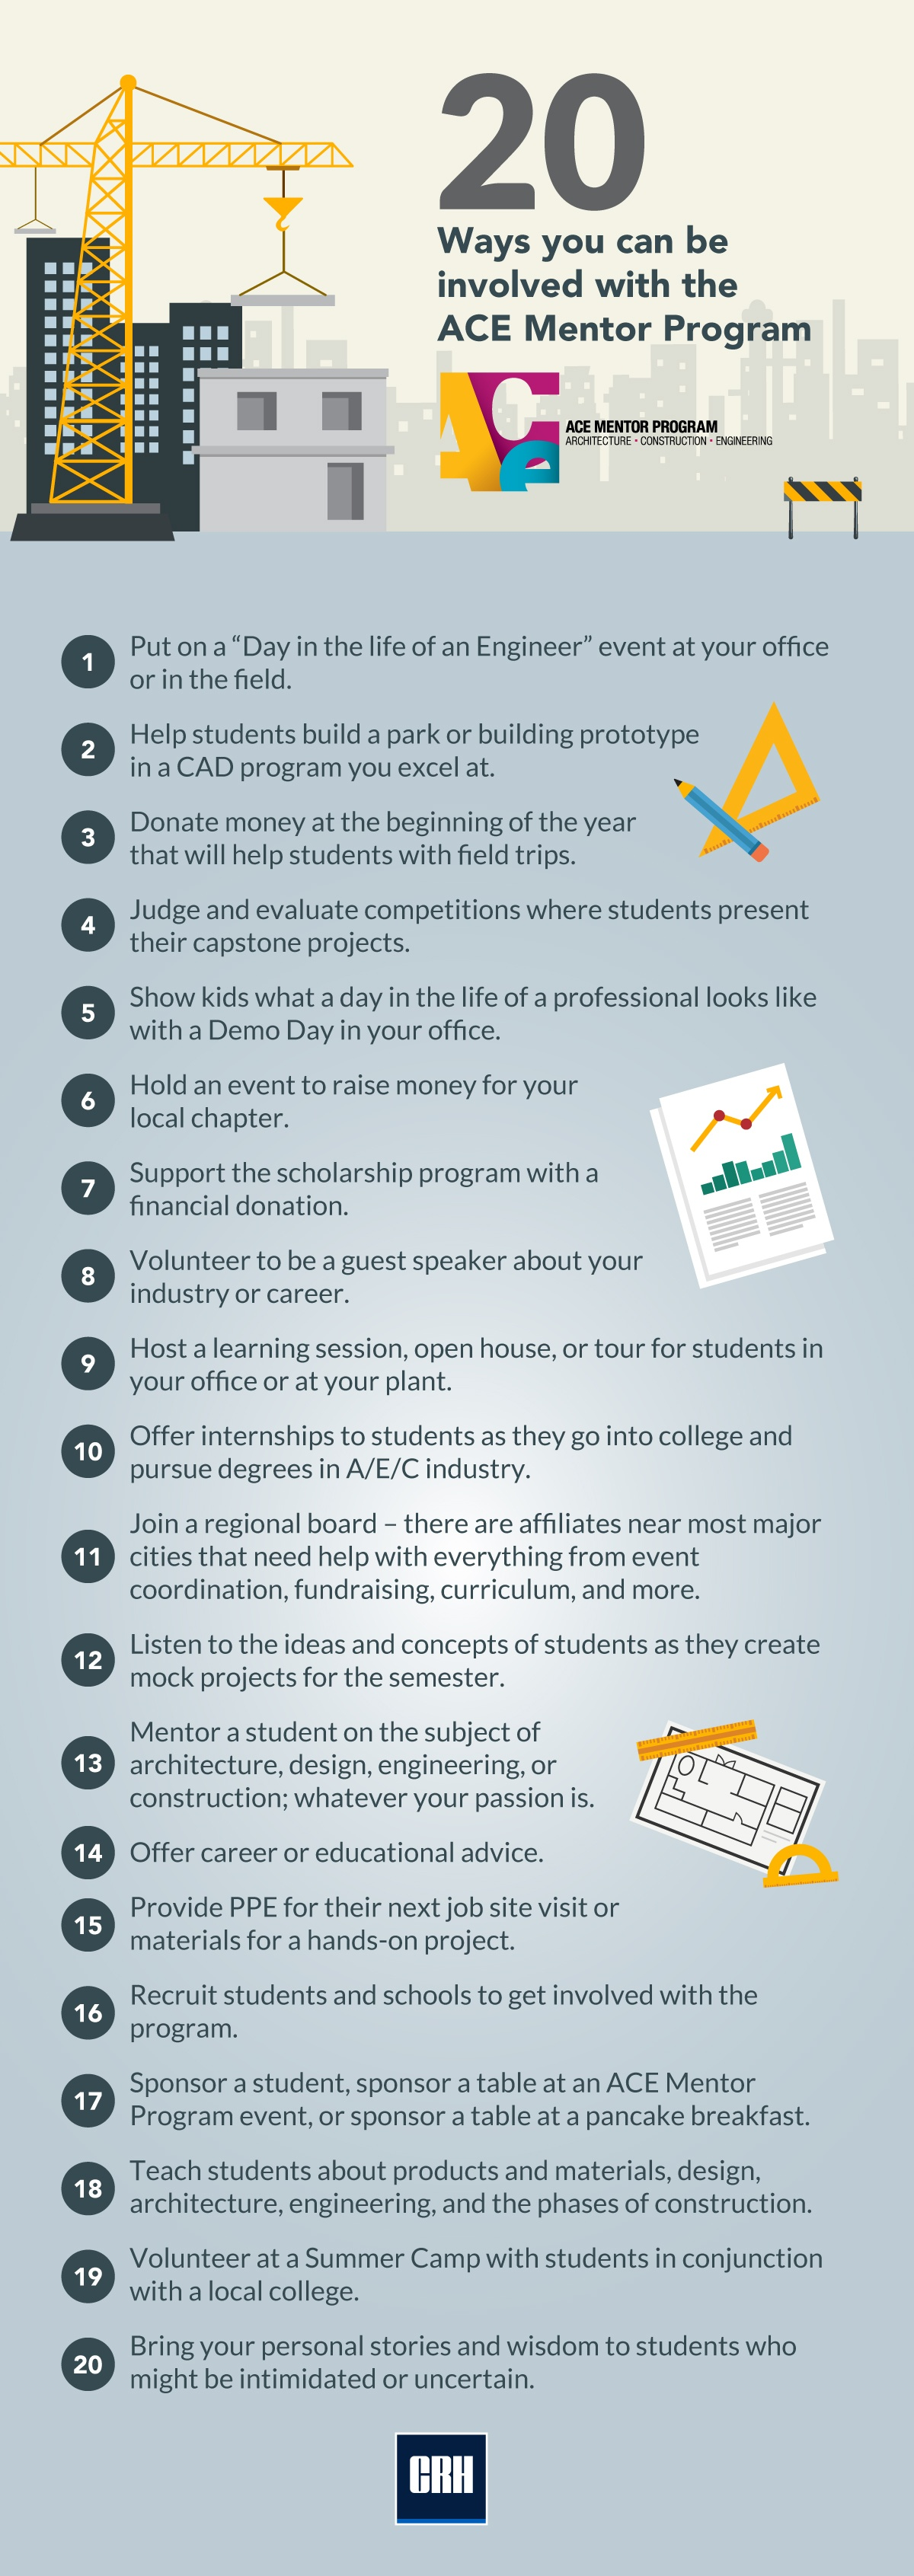 20 Ways to Get Involved with ACE